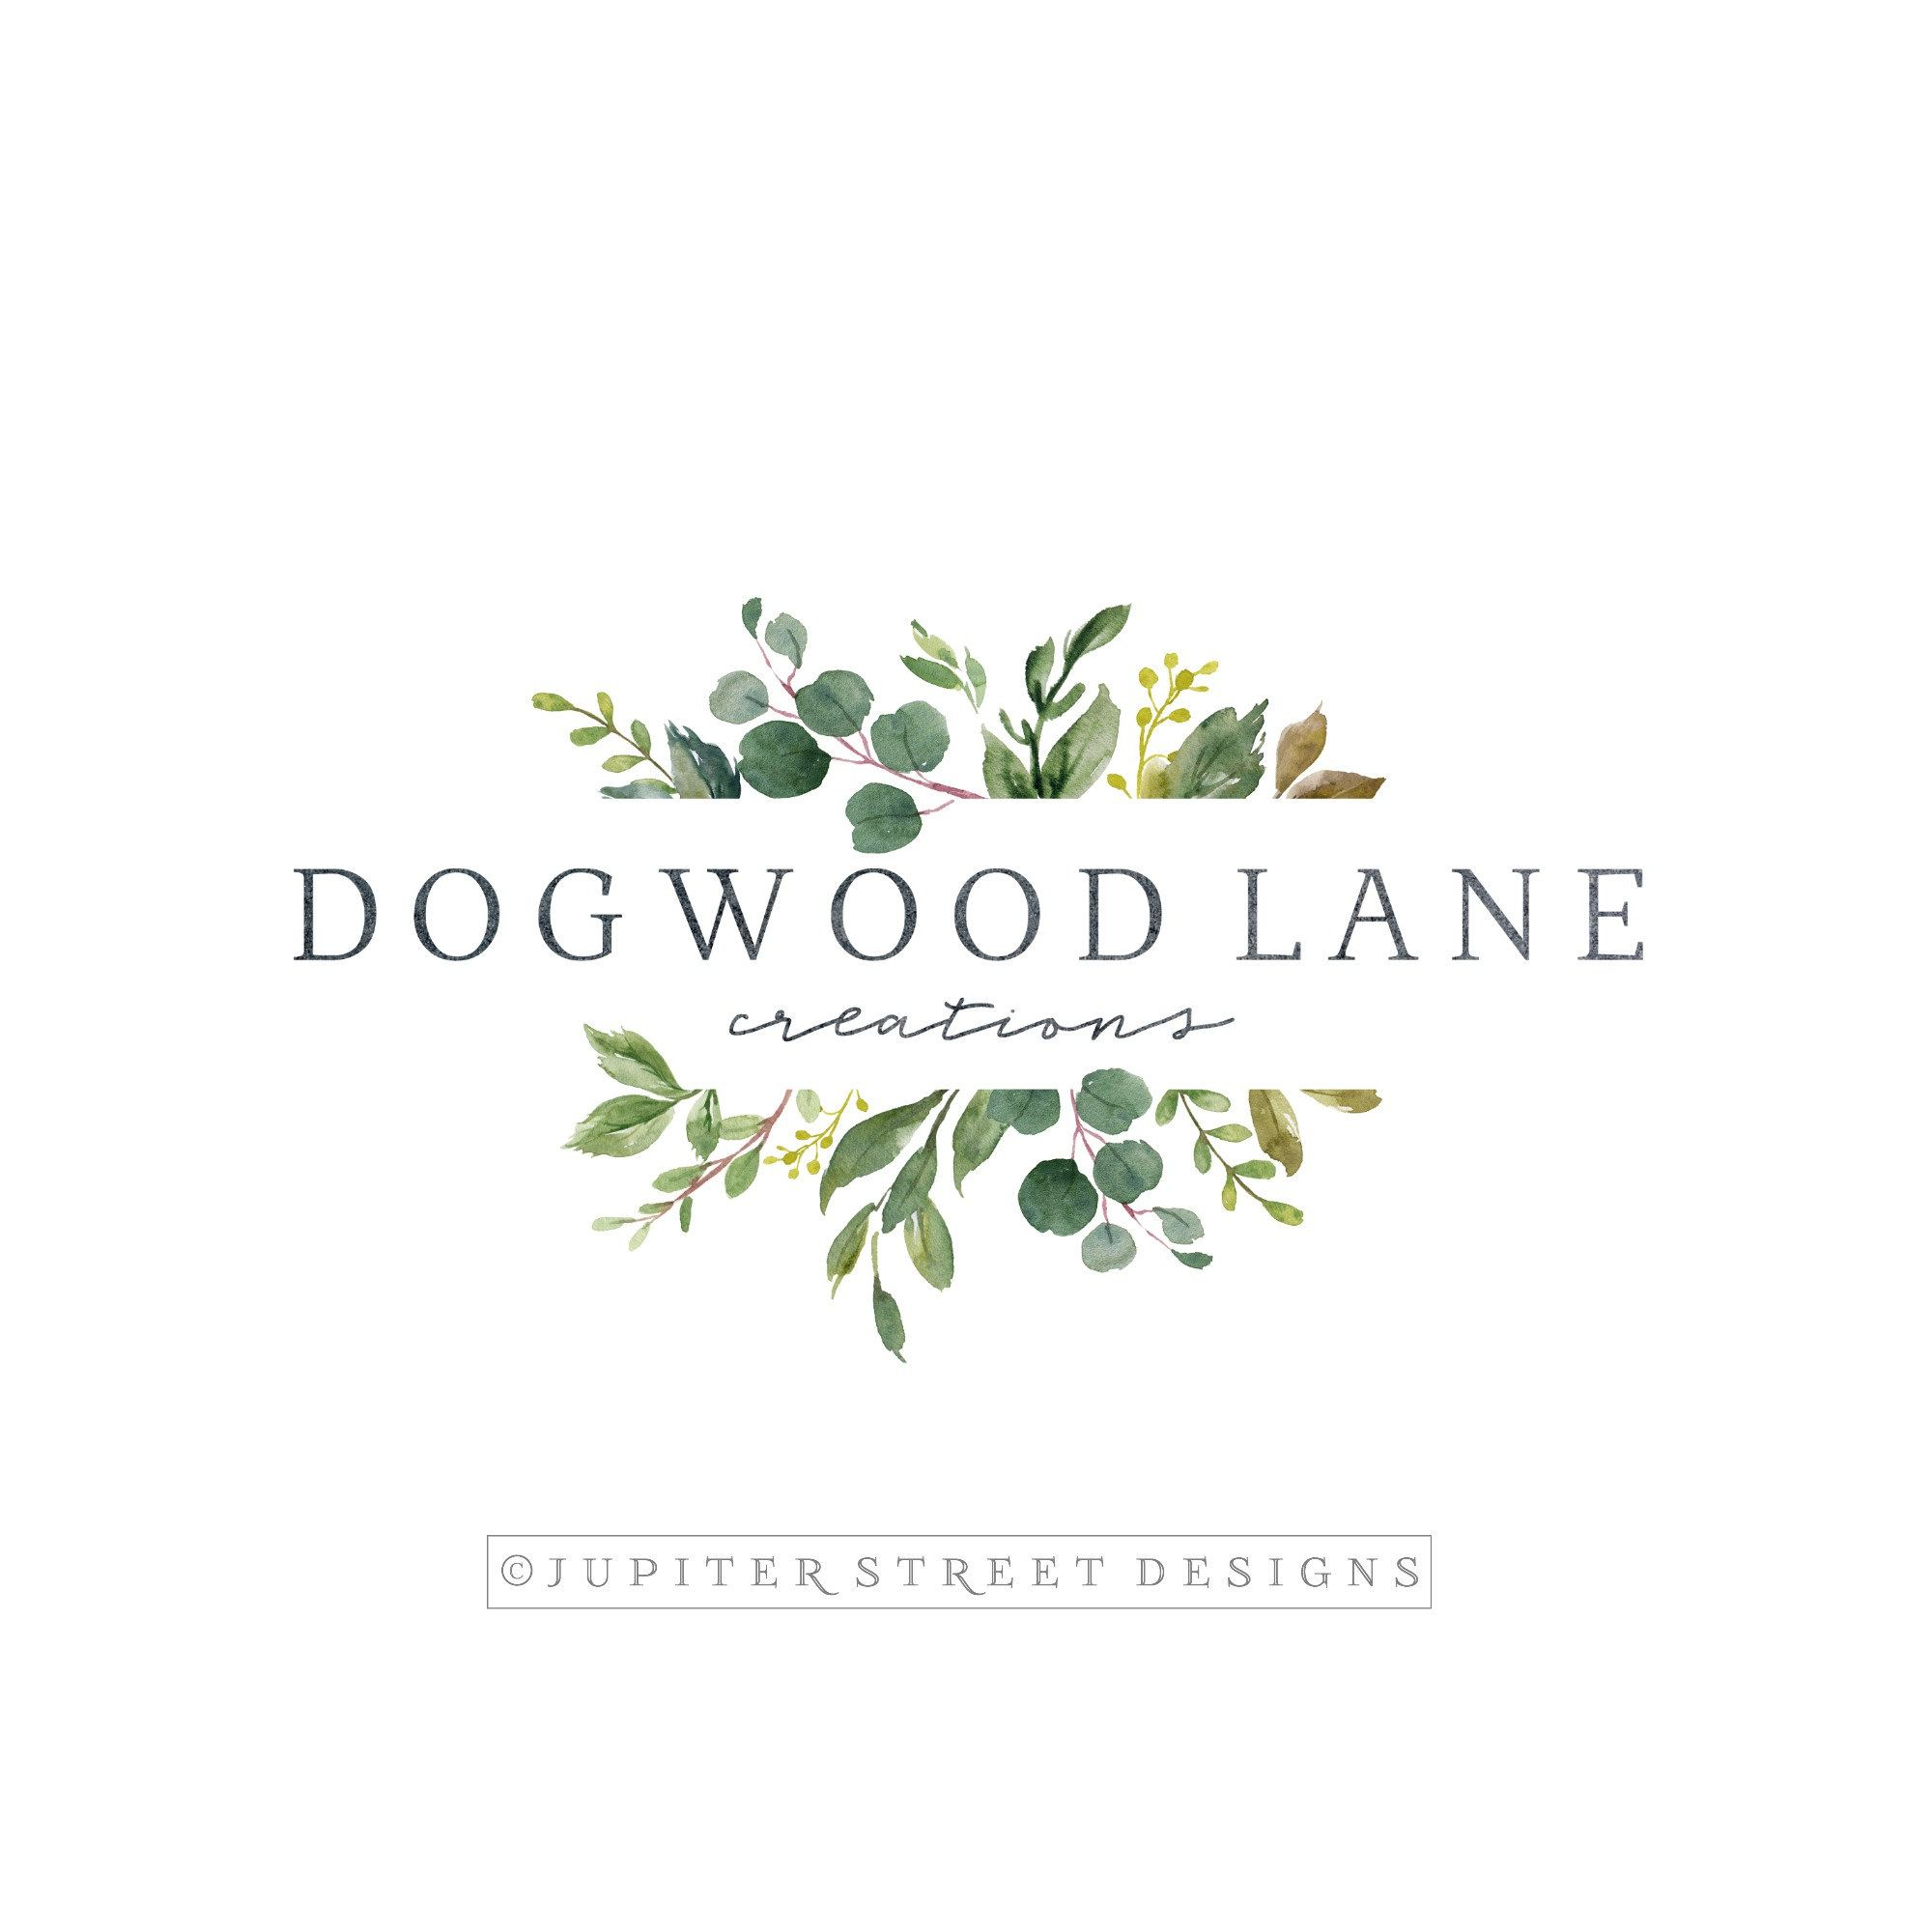 Logo Design, Premade Logo, Botanical Logo, Nature Logo, Branch Logo, Watercolor Logo, Logo Branding is part of Etsy branding - policy ref shopinfo policies © copyright Jupiter Street Designs 2015